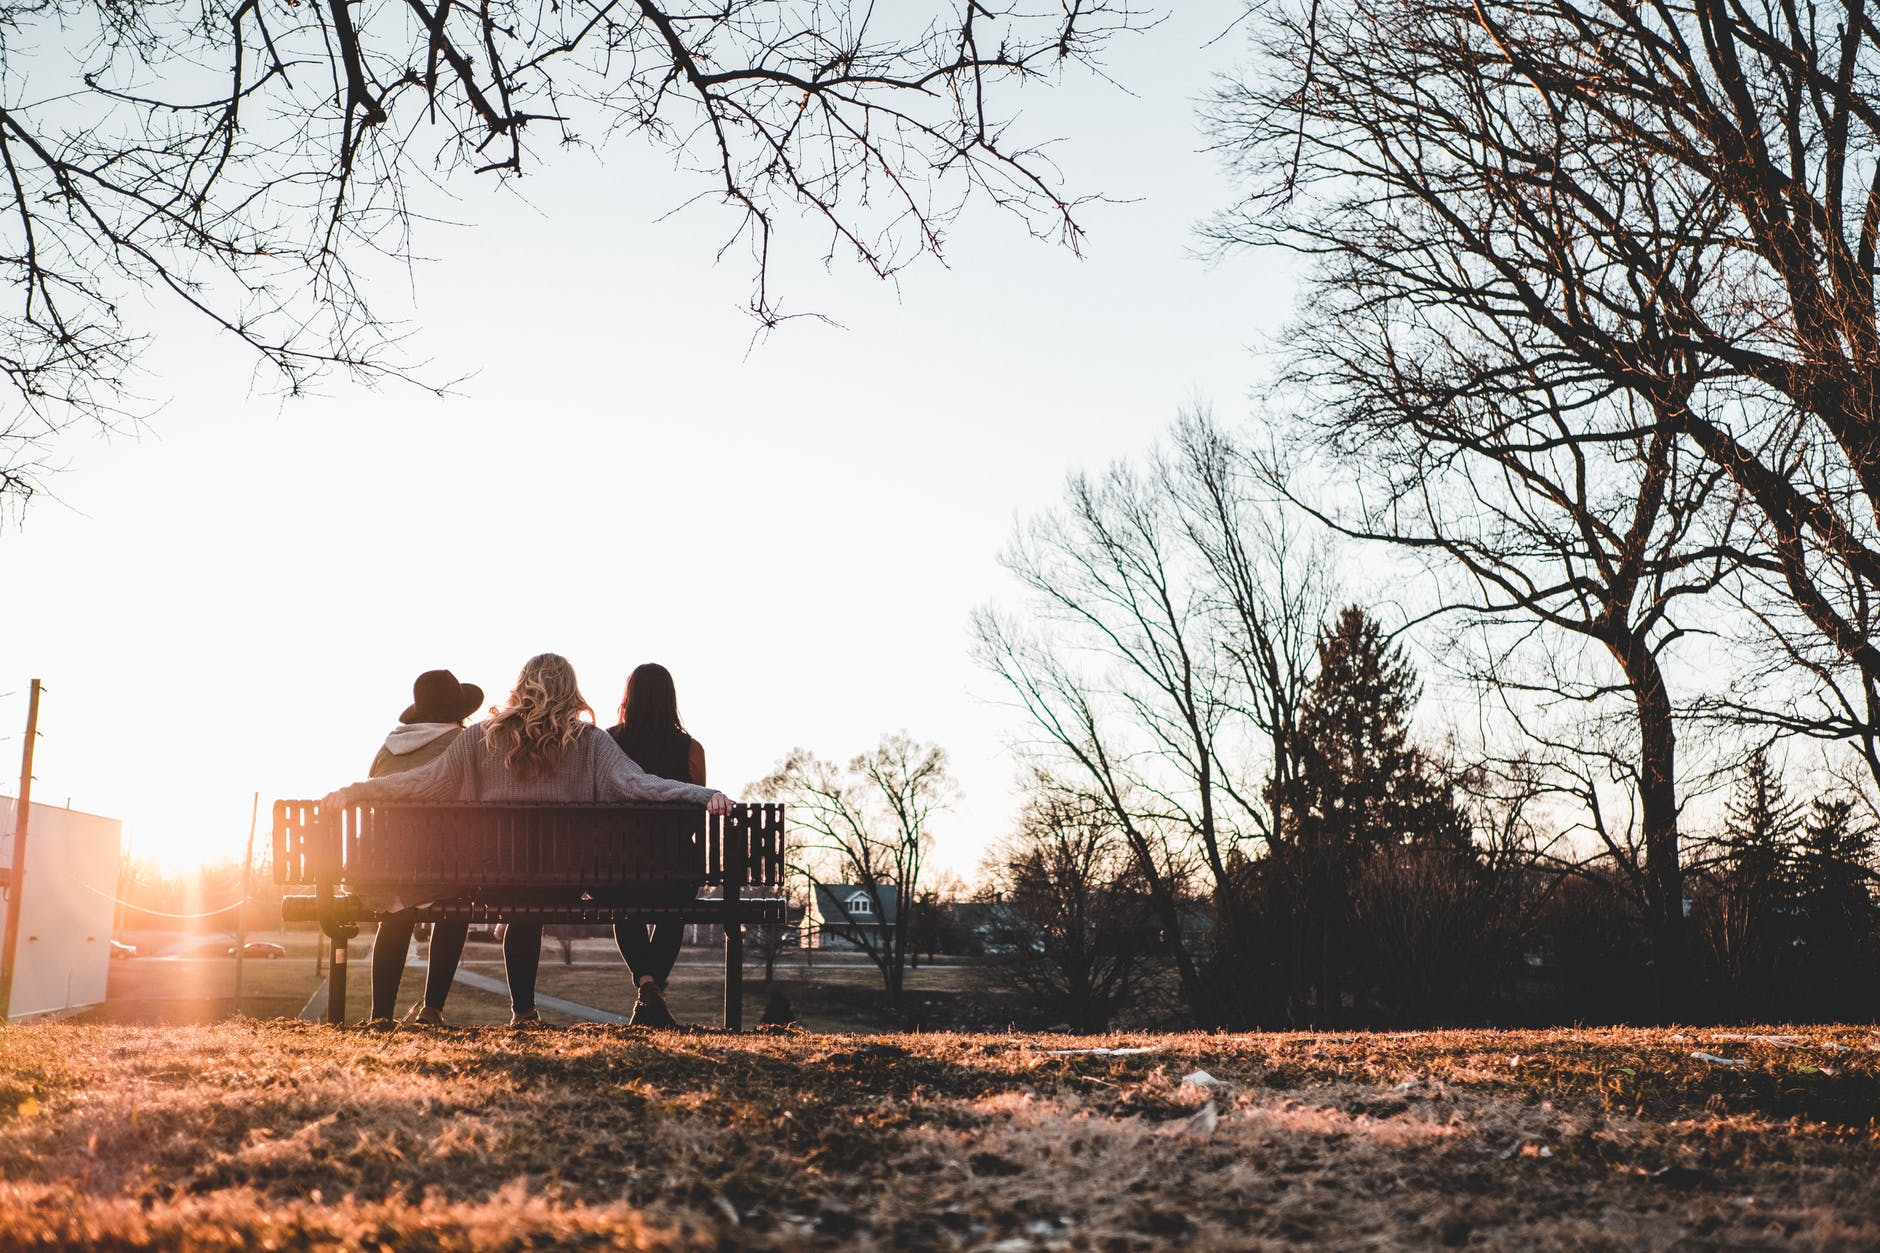 three person sitting on bench under withered trees